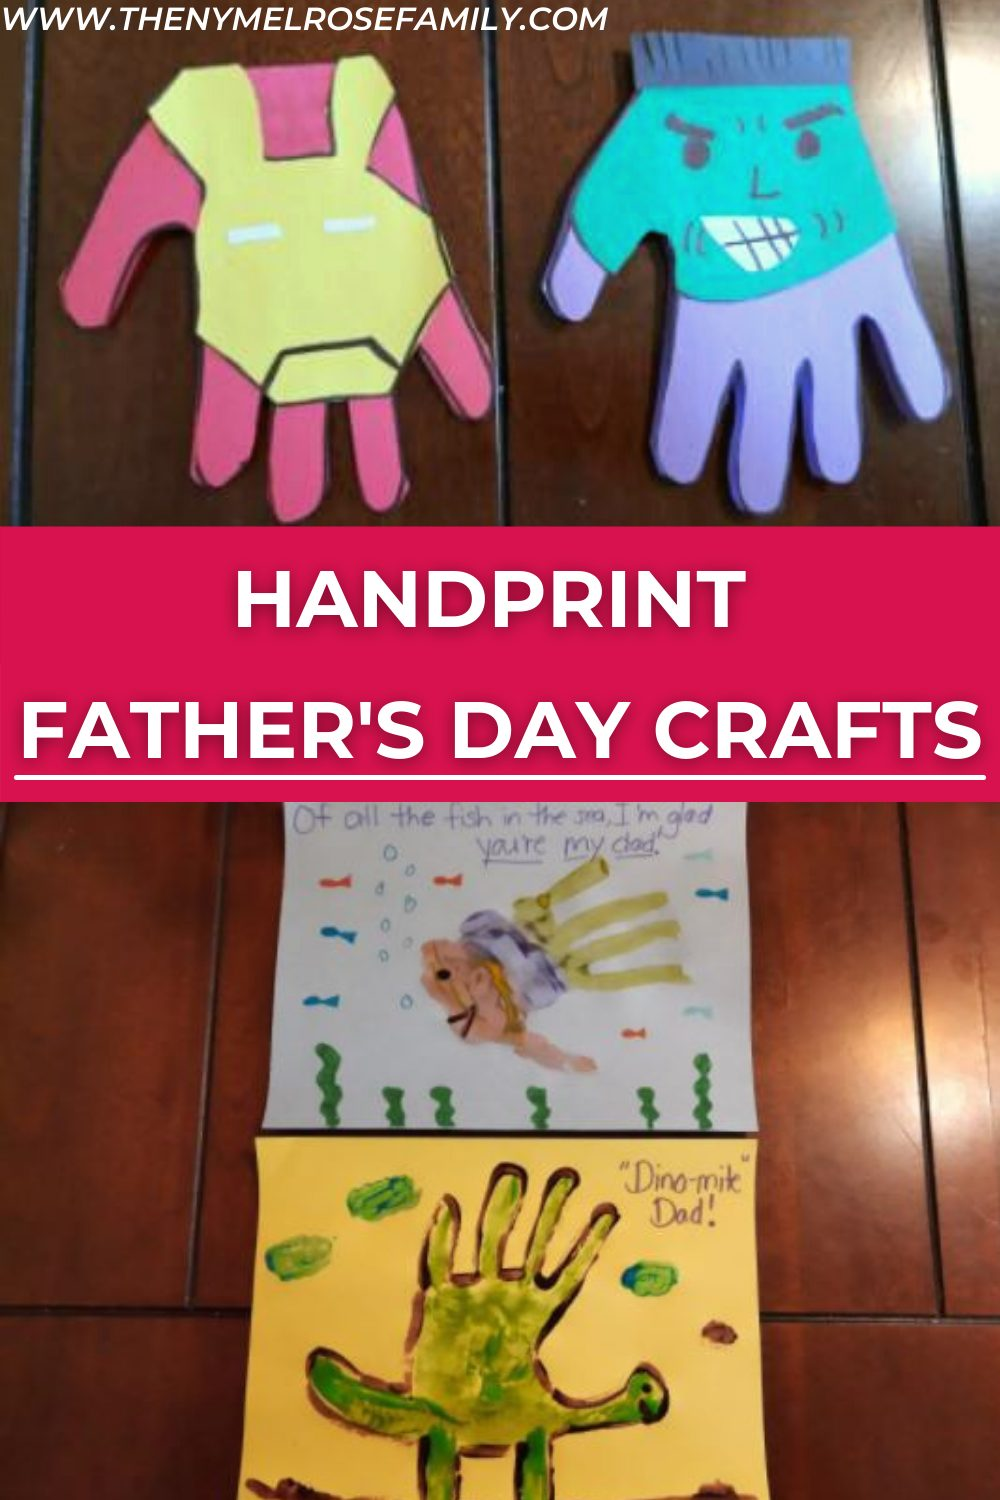 If you are wondering what gift your kids can give their dad this Father's Day, you are in luck. These amazing handprint father's day crafts will make great gift and memorable keepsakes. #fathersdaycrafts #handprintcrafts #kidscrafts #fathersdaygifts #nymelrosefamily via @jennymelrose